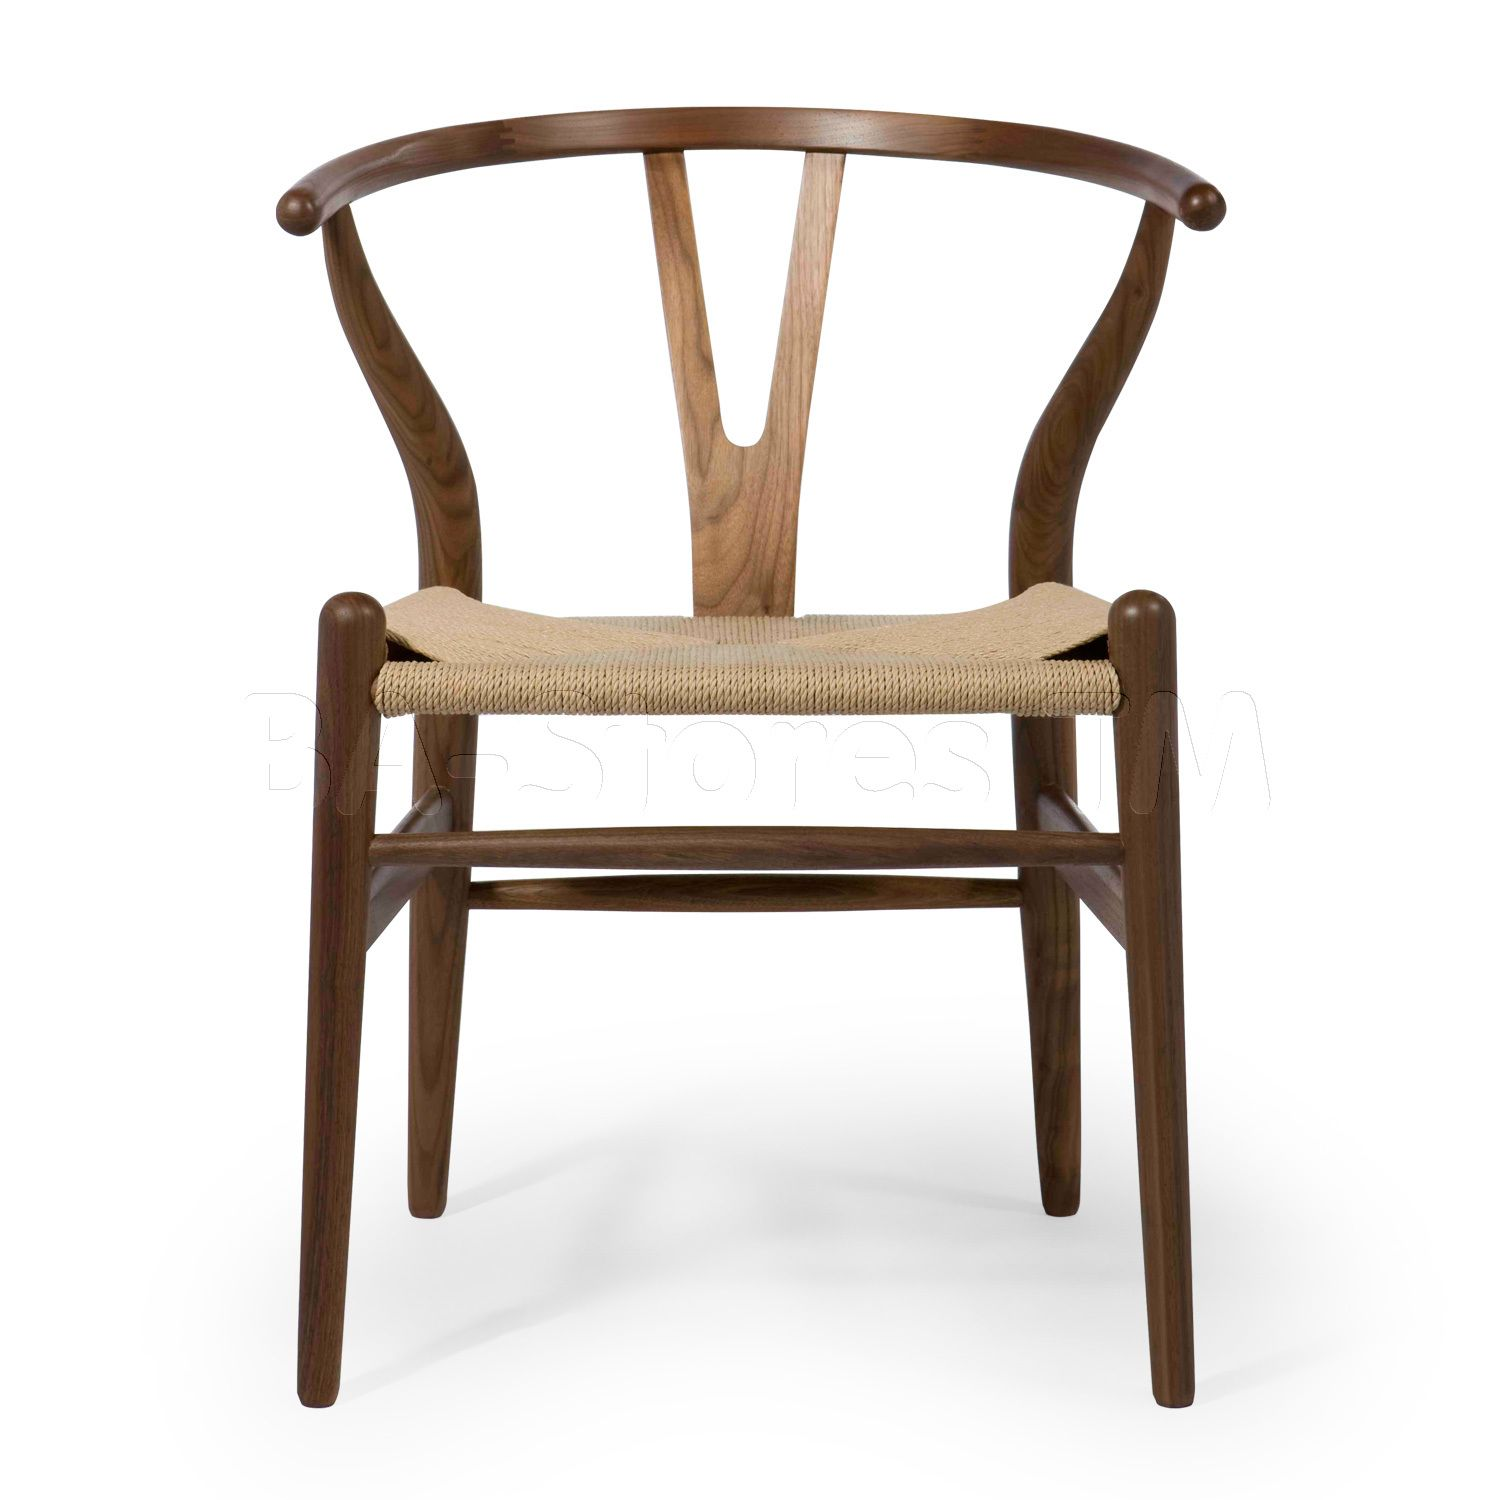 Albany2 Dining Chair in Walnut by Aeon Wishbone chair